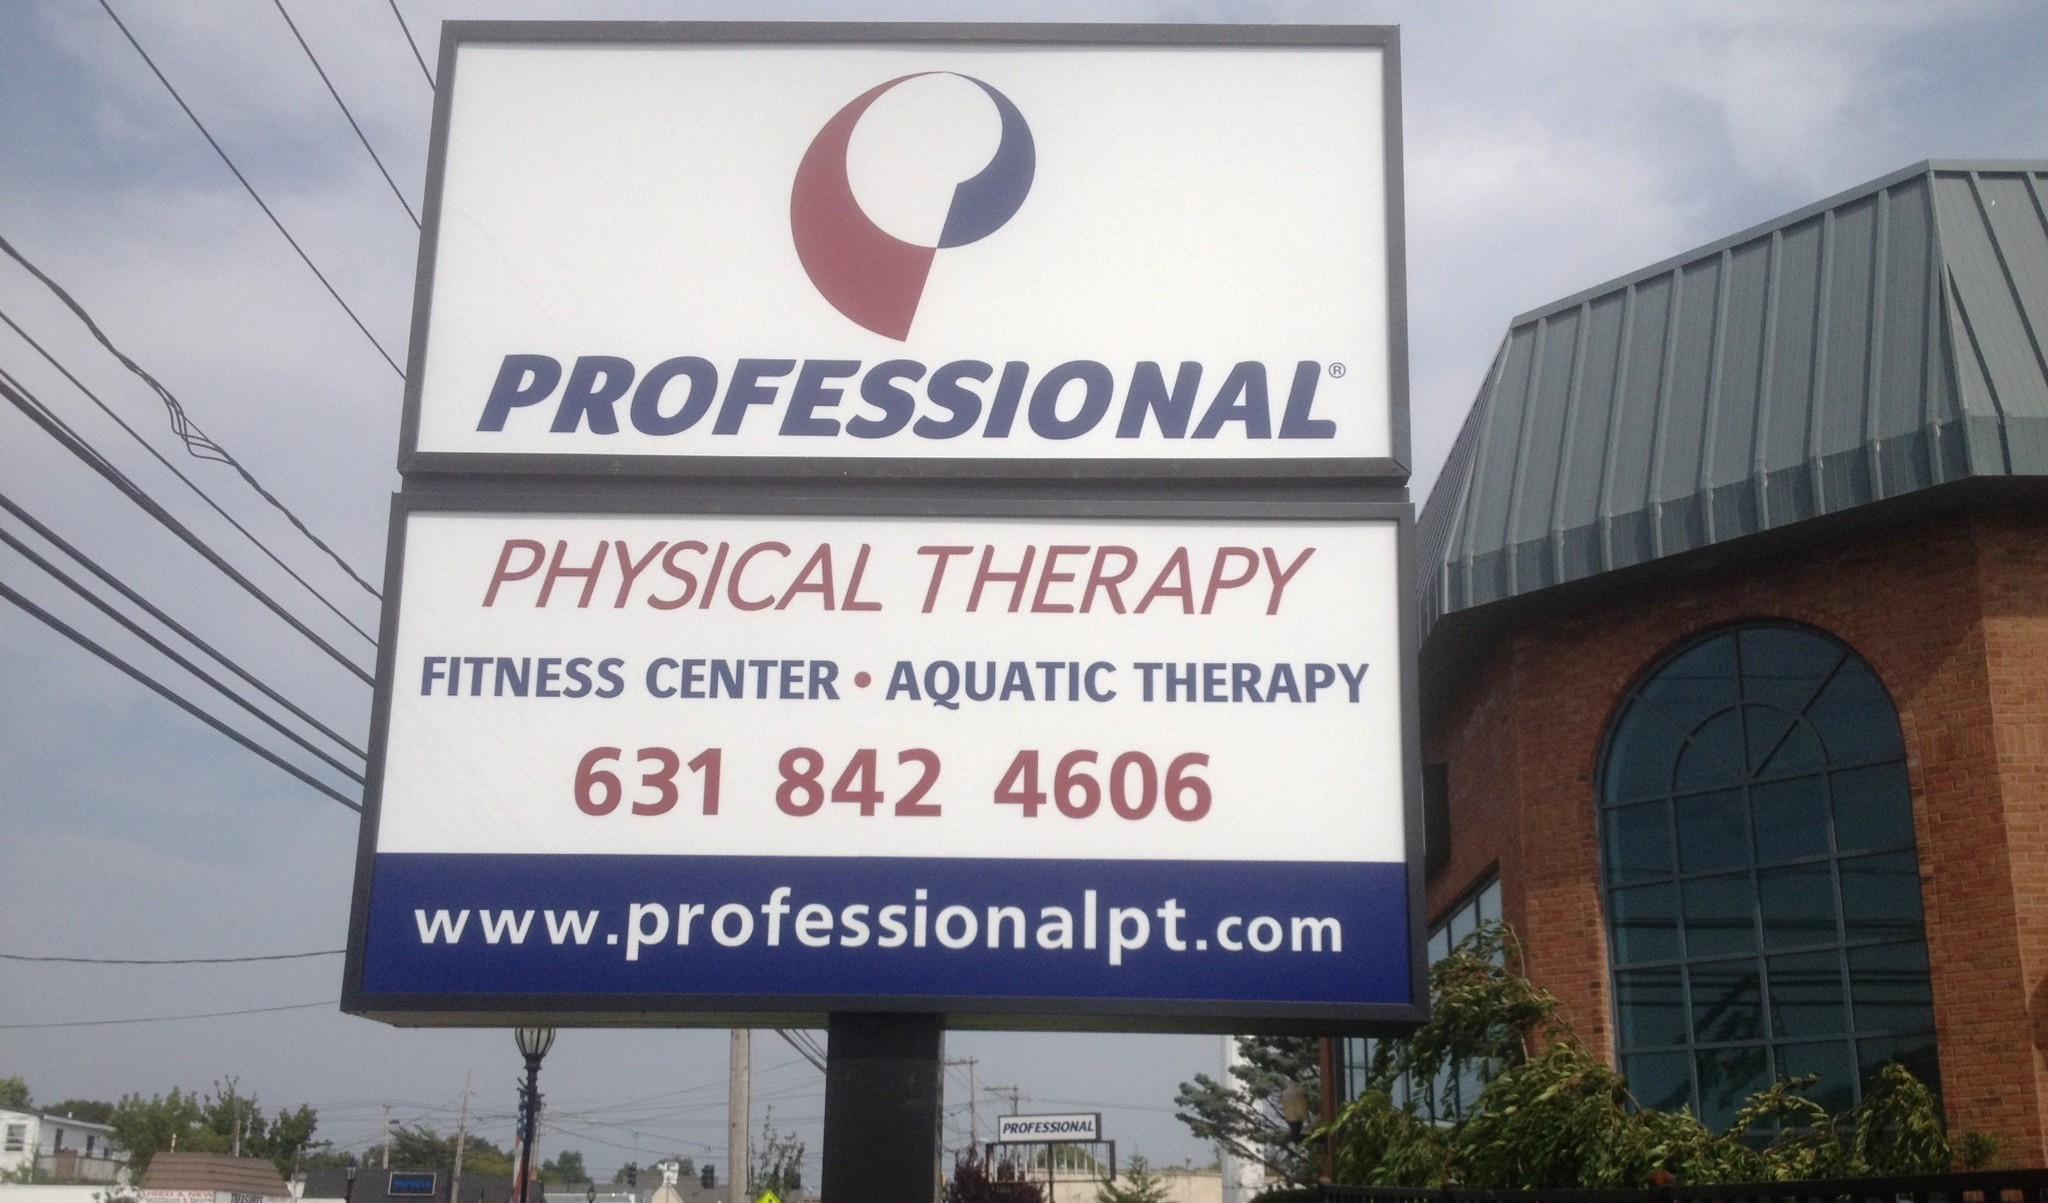 Professional Physical Therapy Fitness Center In Copiague